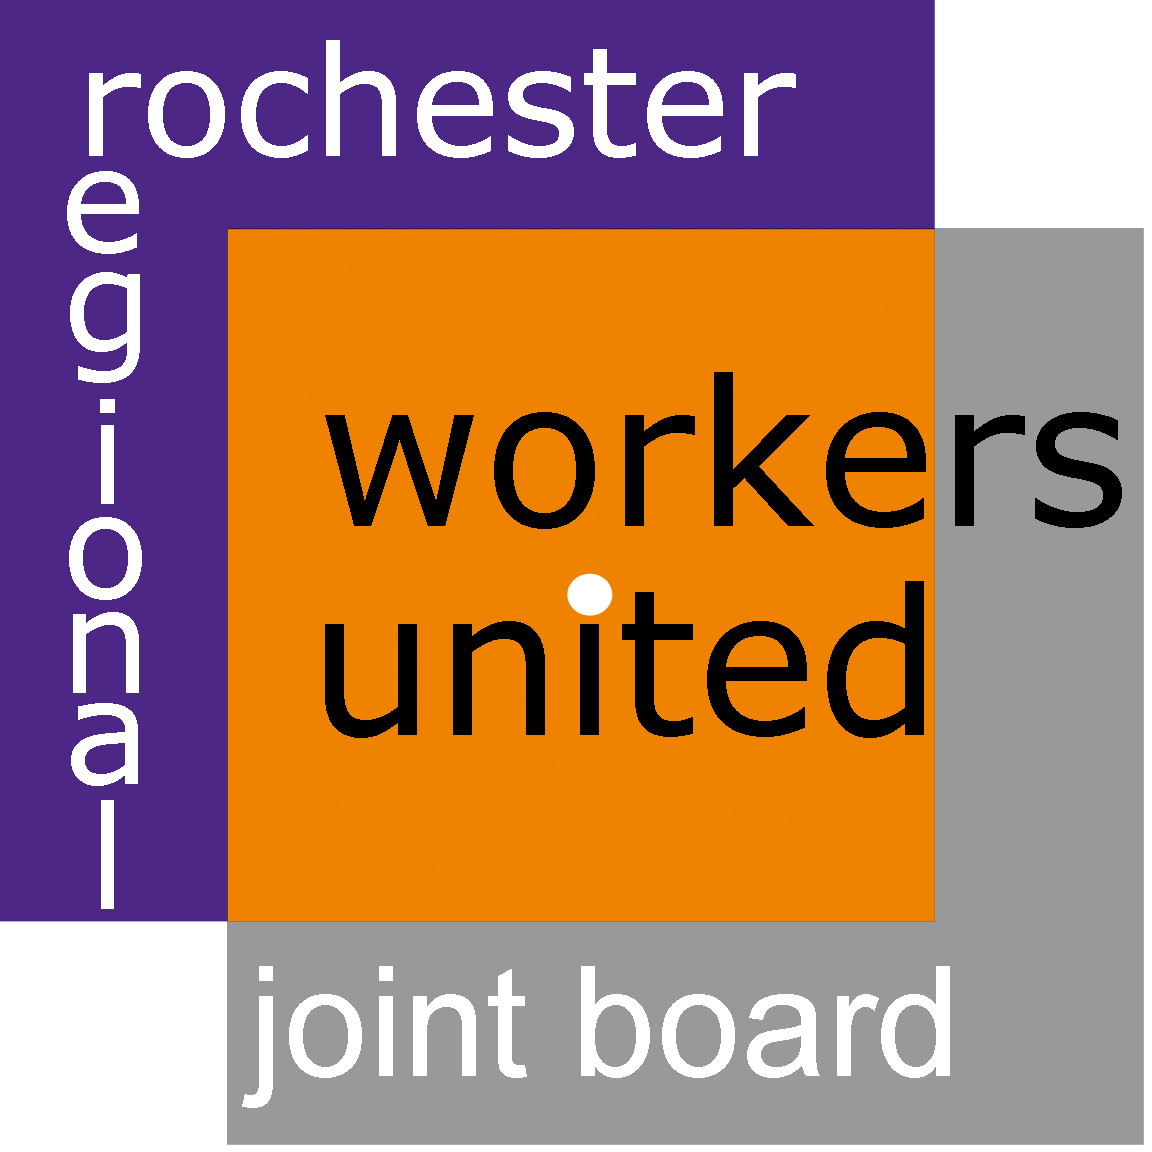 Workers United, Rochester Regional Joint Board